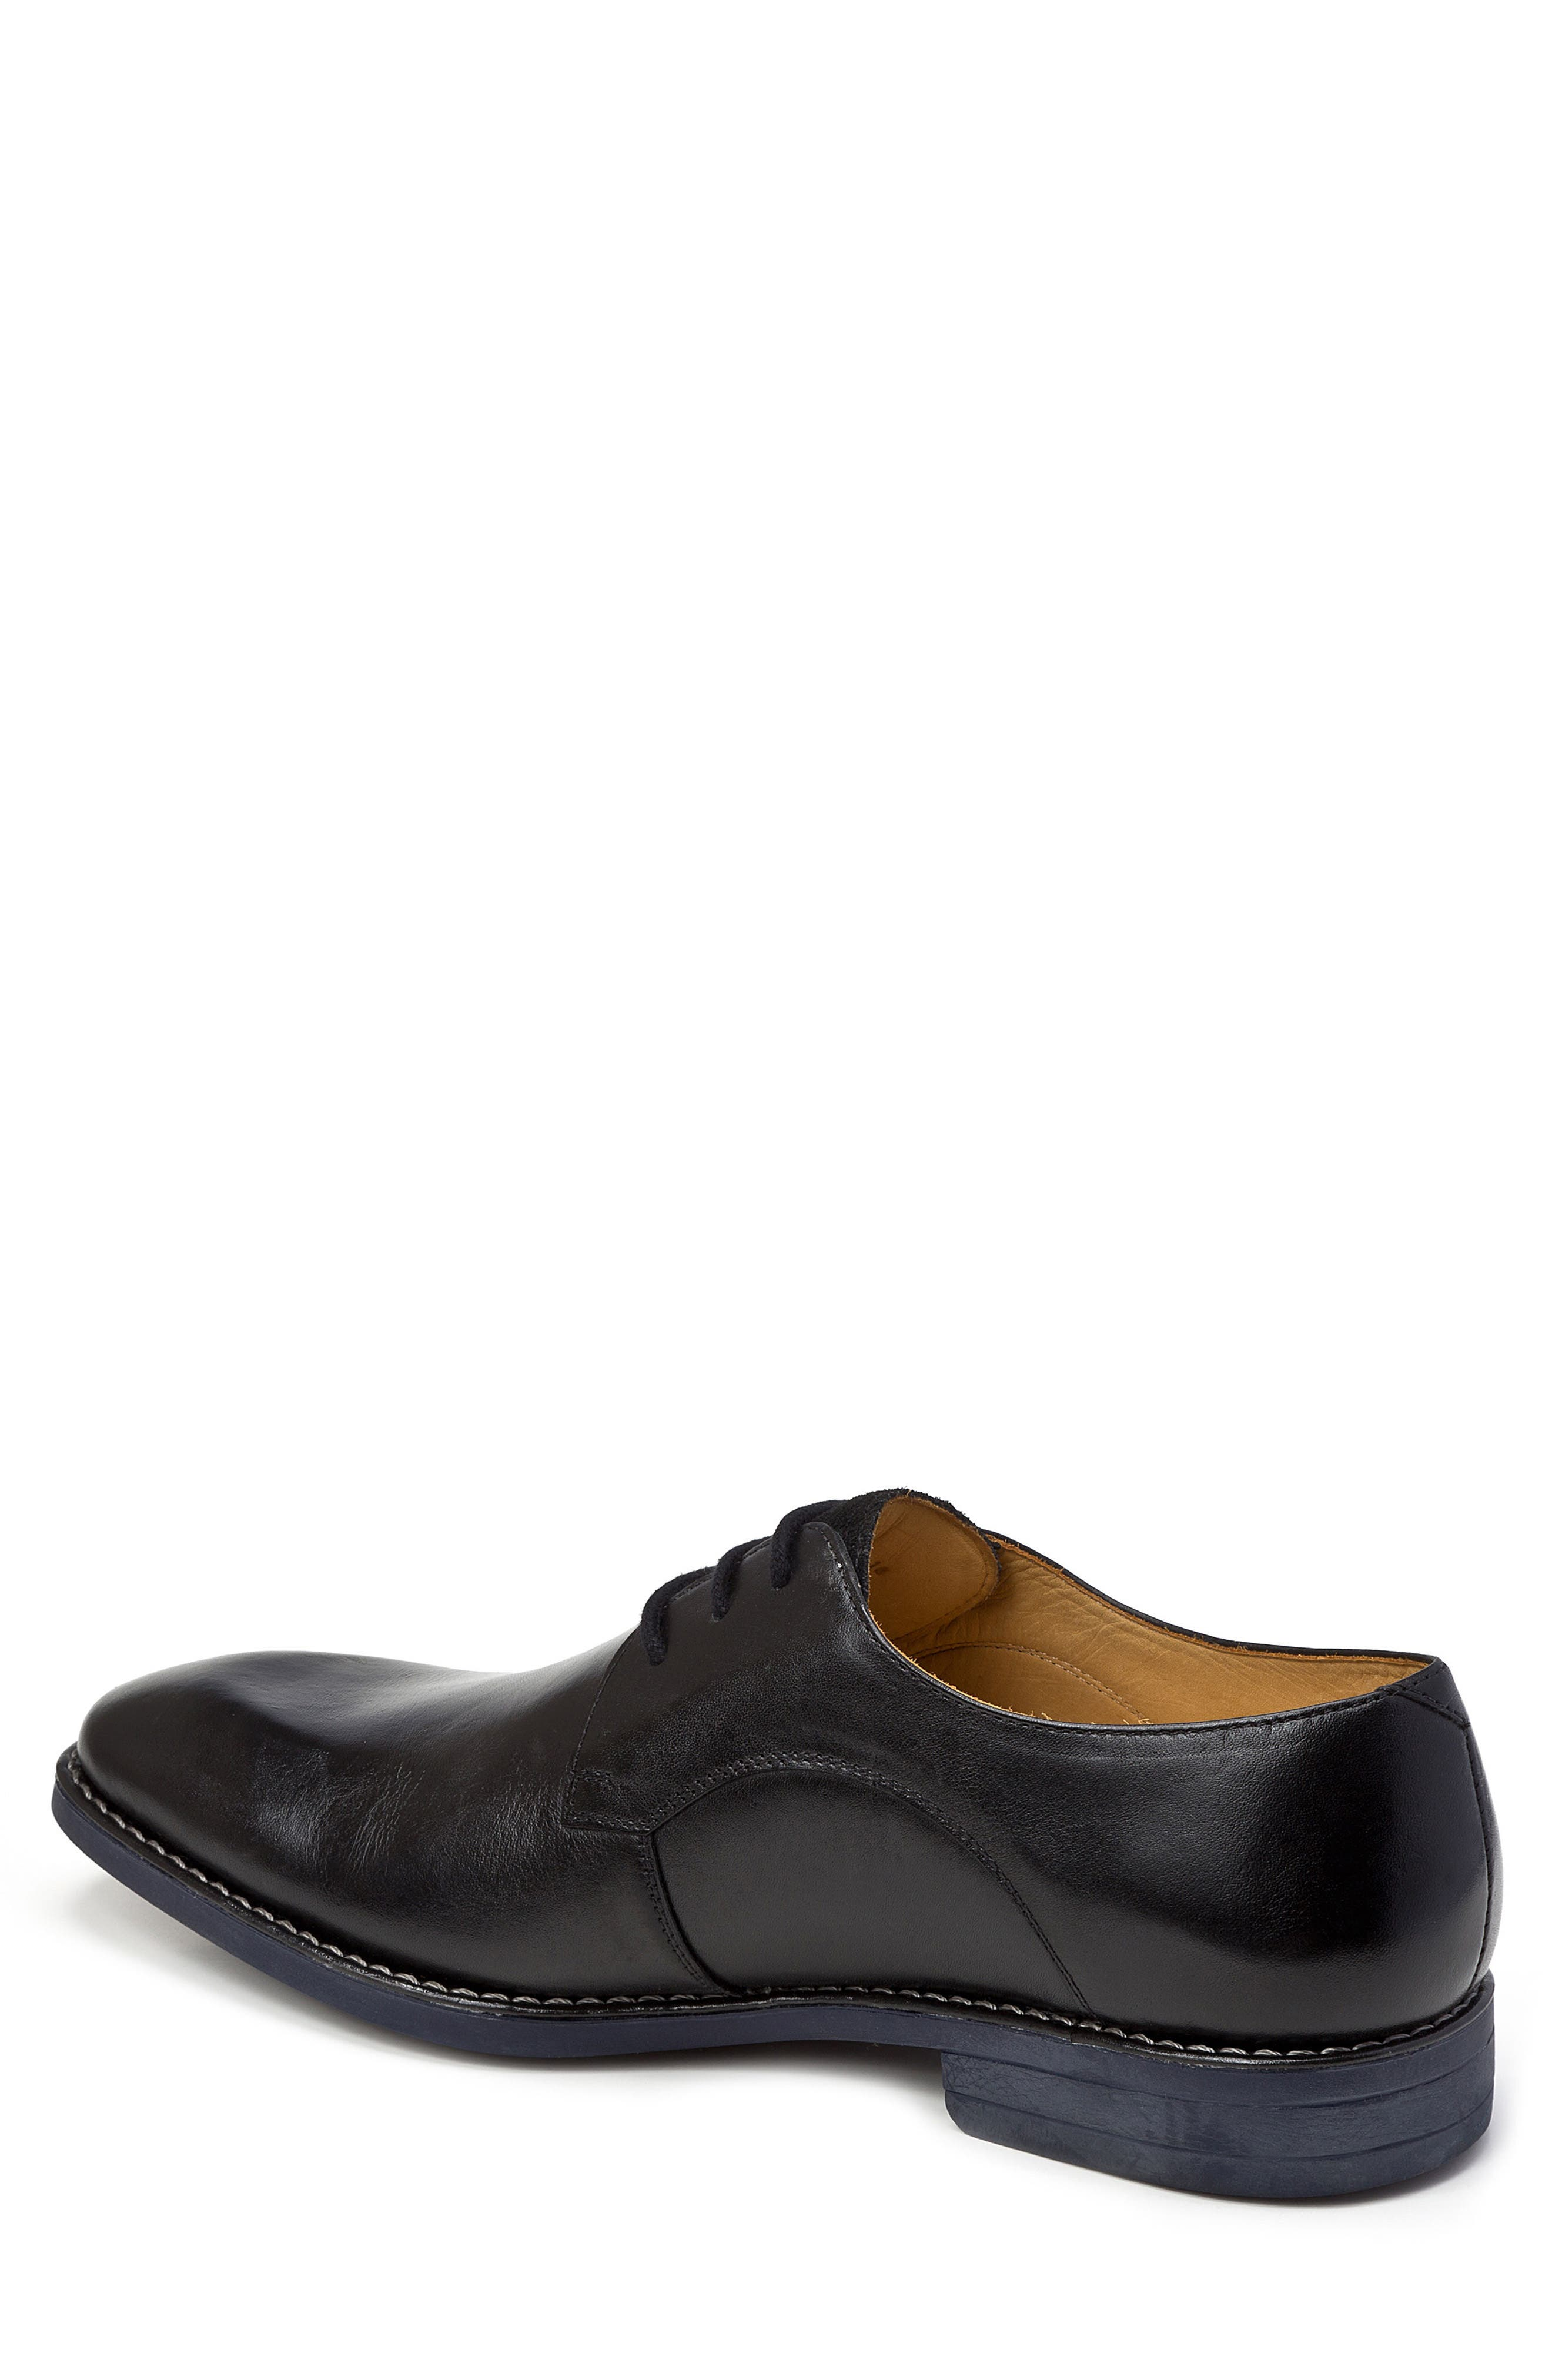 SANDRO MOSCOLONI, Garret Plain Toe Derby, Alternate thumbnail 2, color, BLACK LEATHER